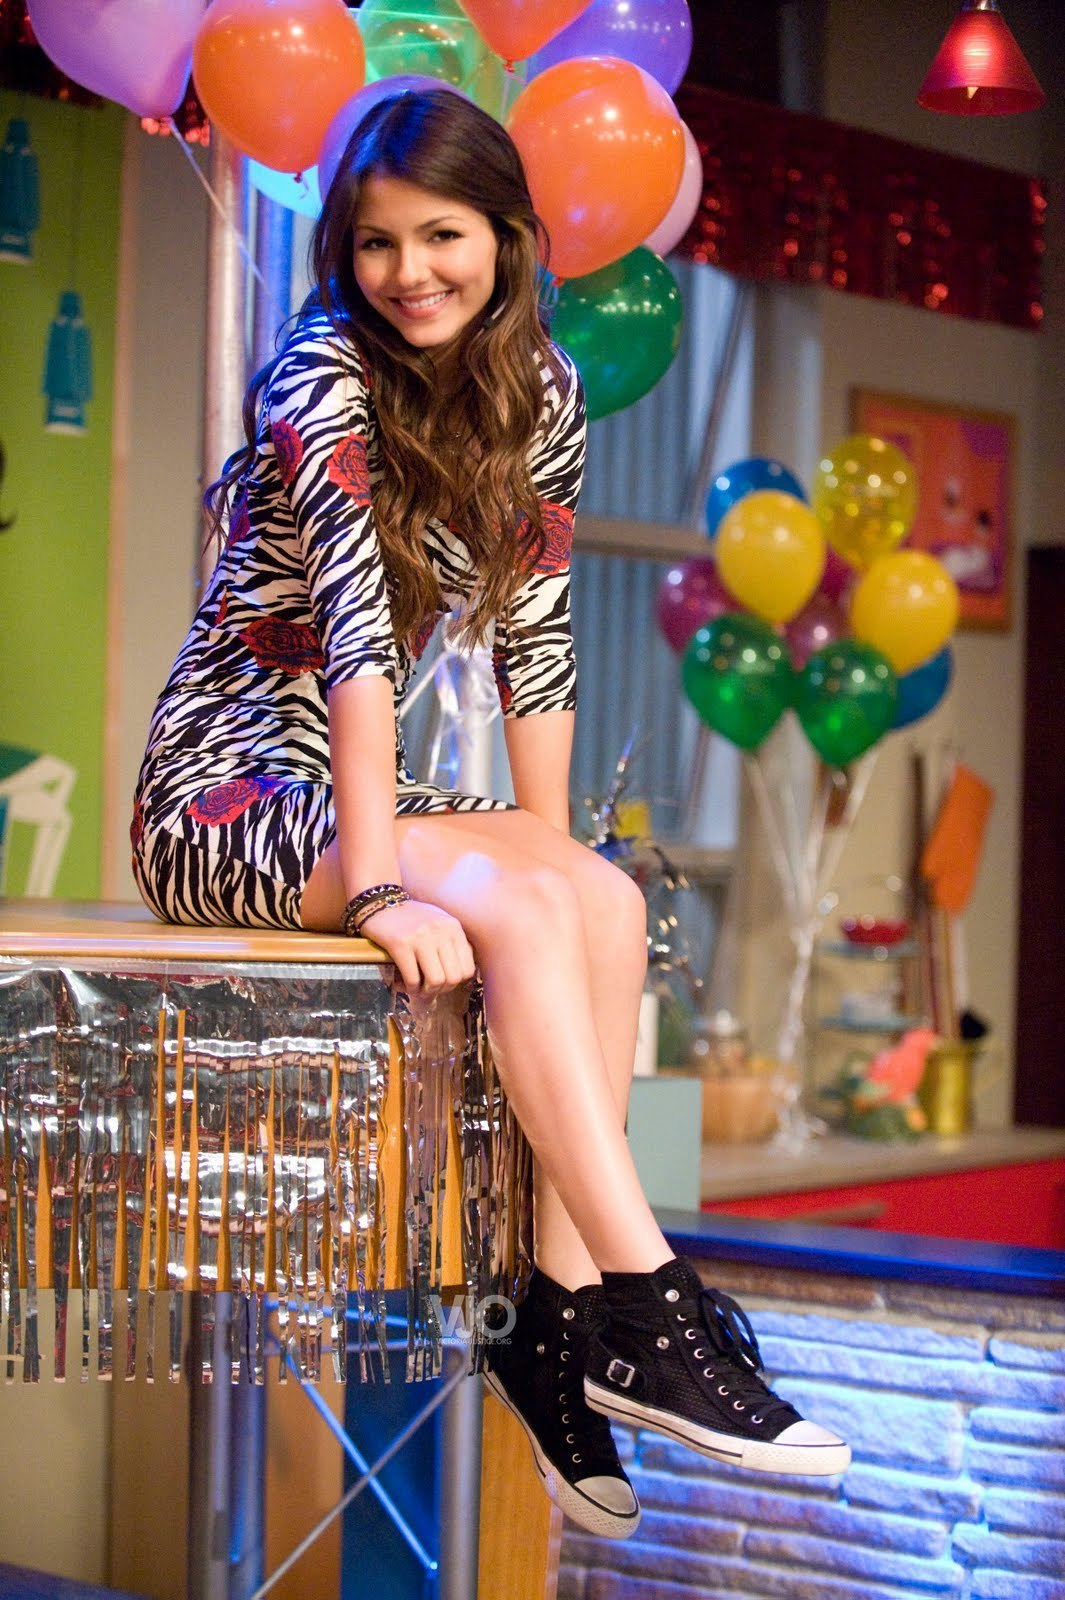 Victorious Song For Trina's Birthday Lyrics : victorious, trina's, birthday, lyrics, Birthweek, Victorious, (18482465), Fanpop